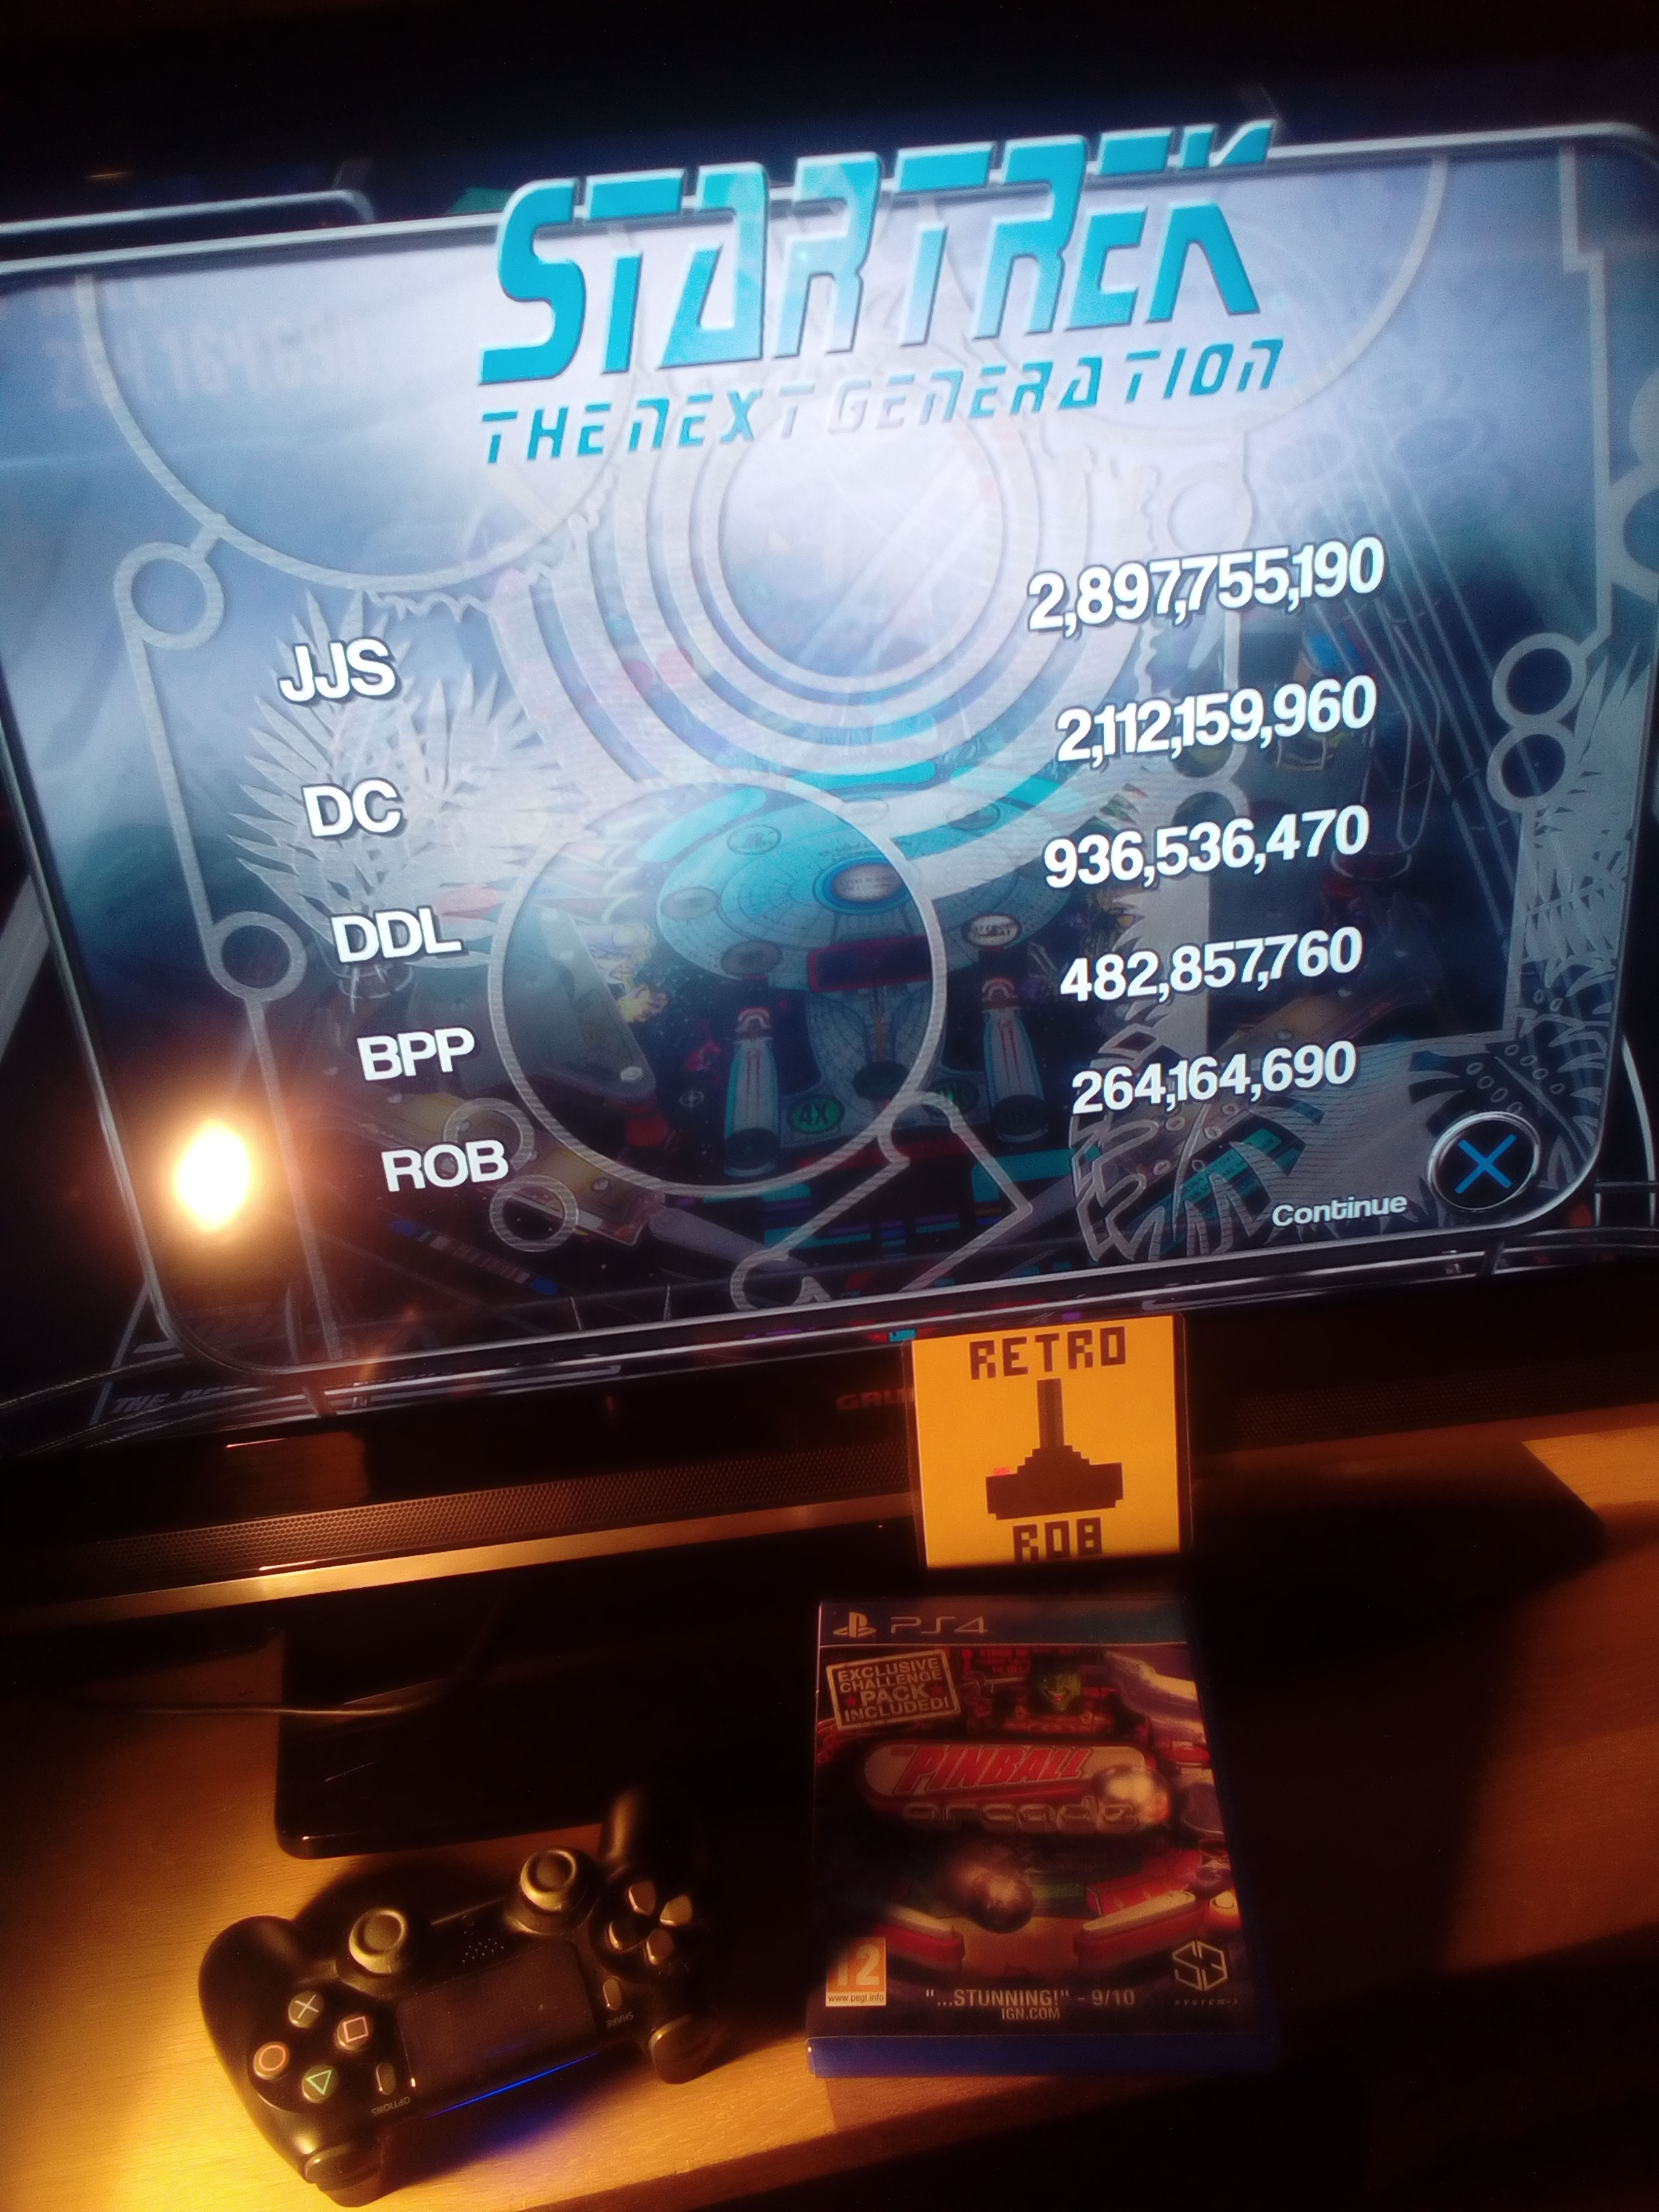 RetroRob: Pinball Arcade: Star Trek: The Next Generation (Playstation 4) 264,164,690 points on 2019-08-07 14:04:07